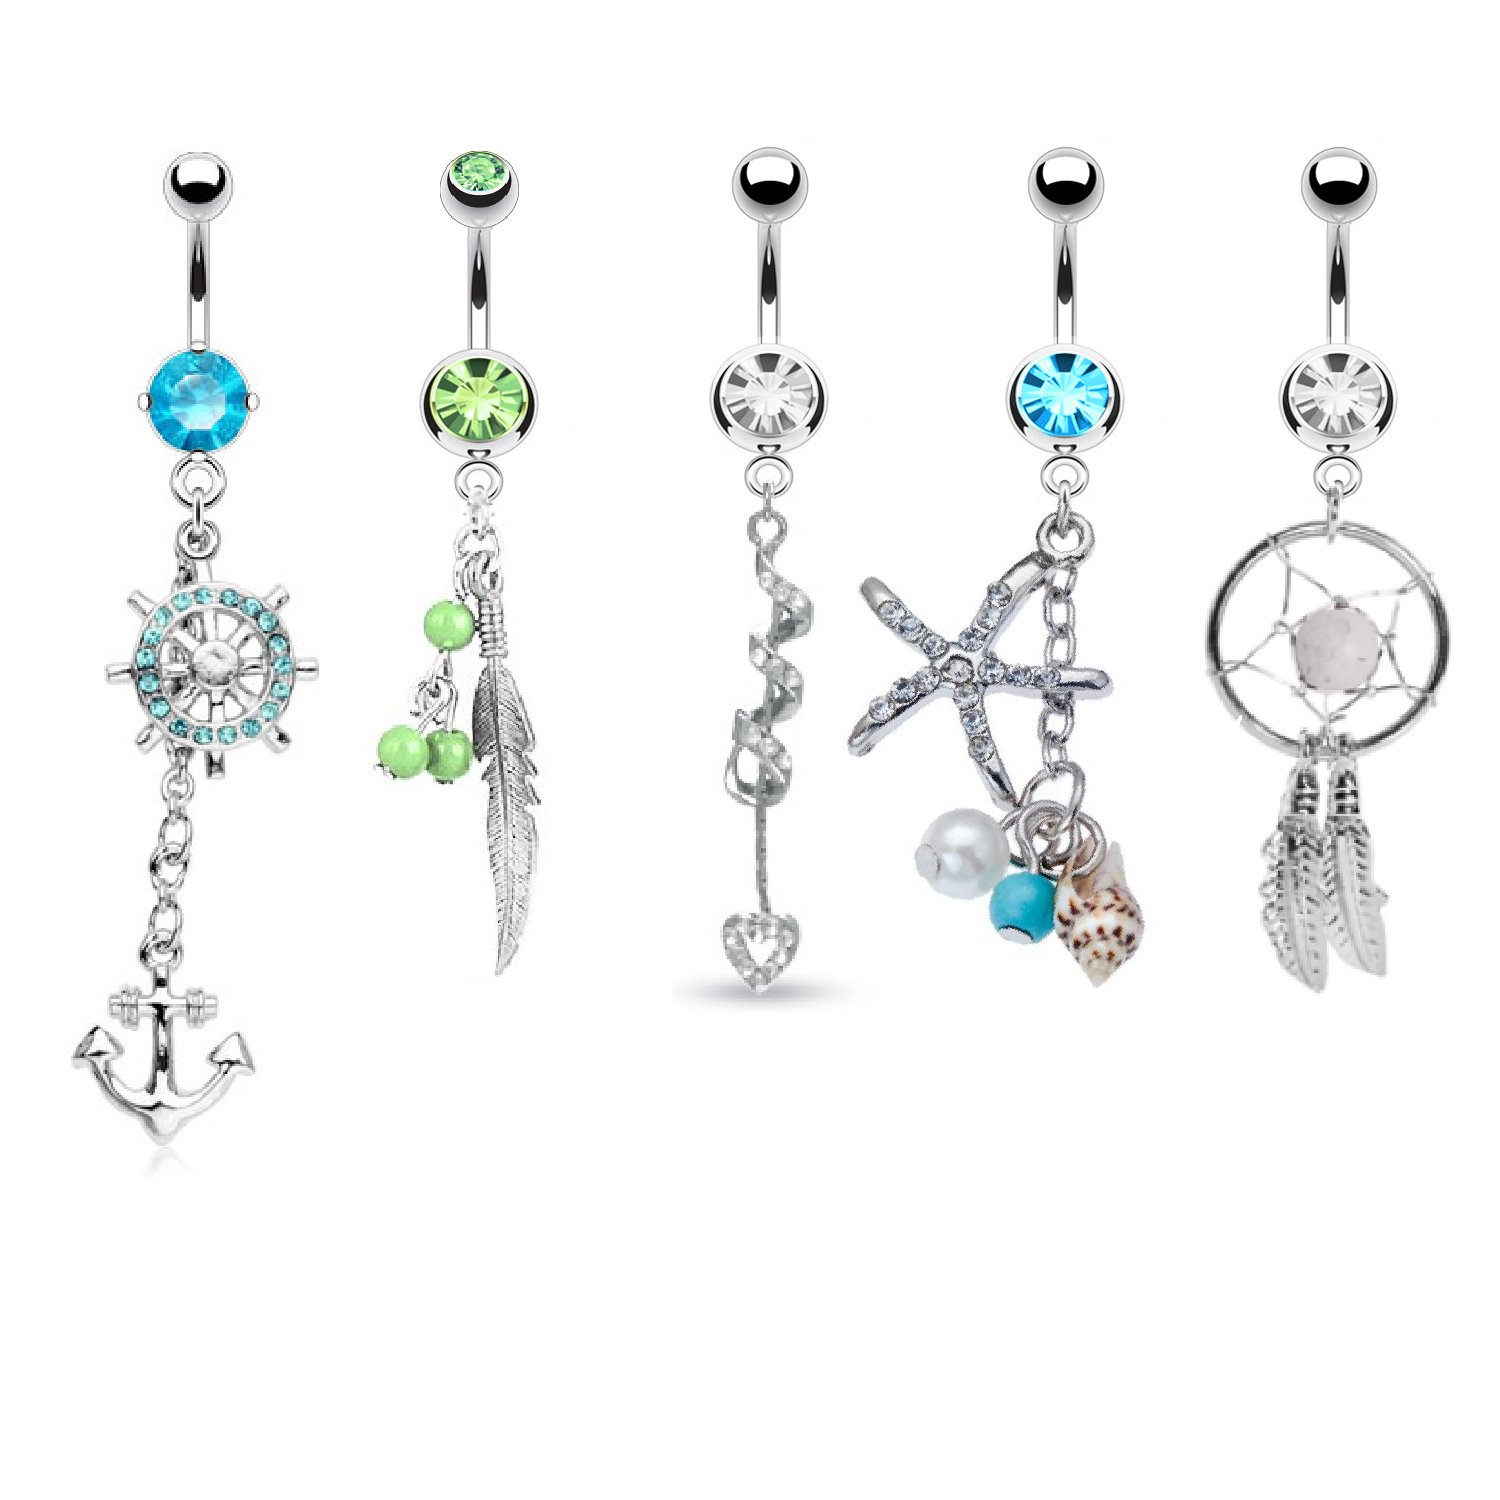 BodyJ4You® Belly Button Rings Tribal Set 5 Pieces Dangle Navel Piercing Jewelry 14G